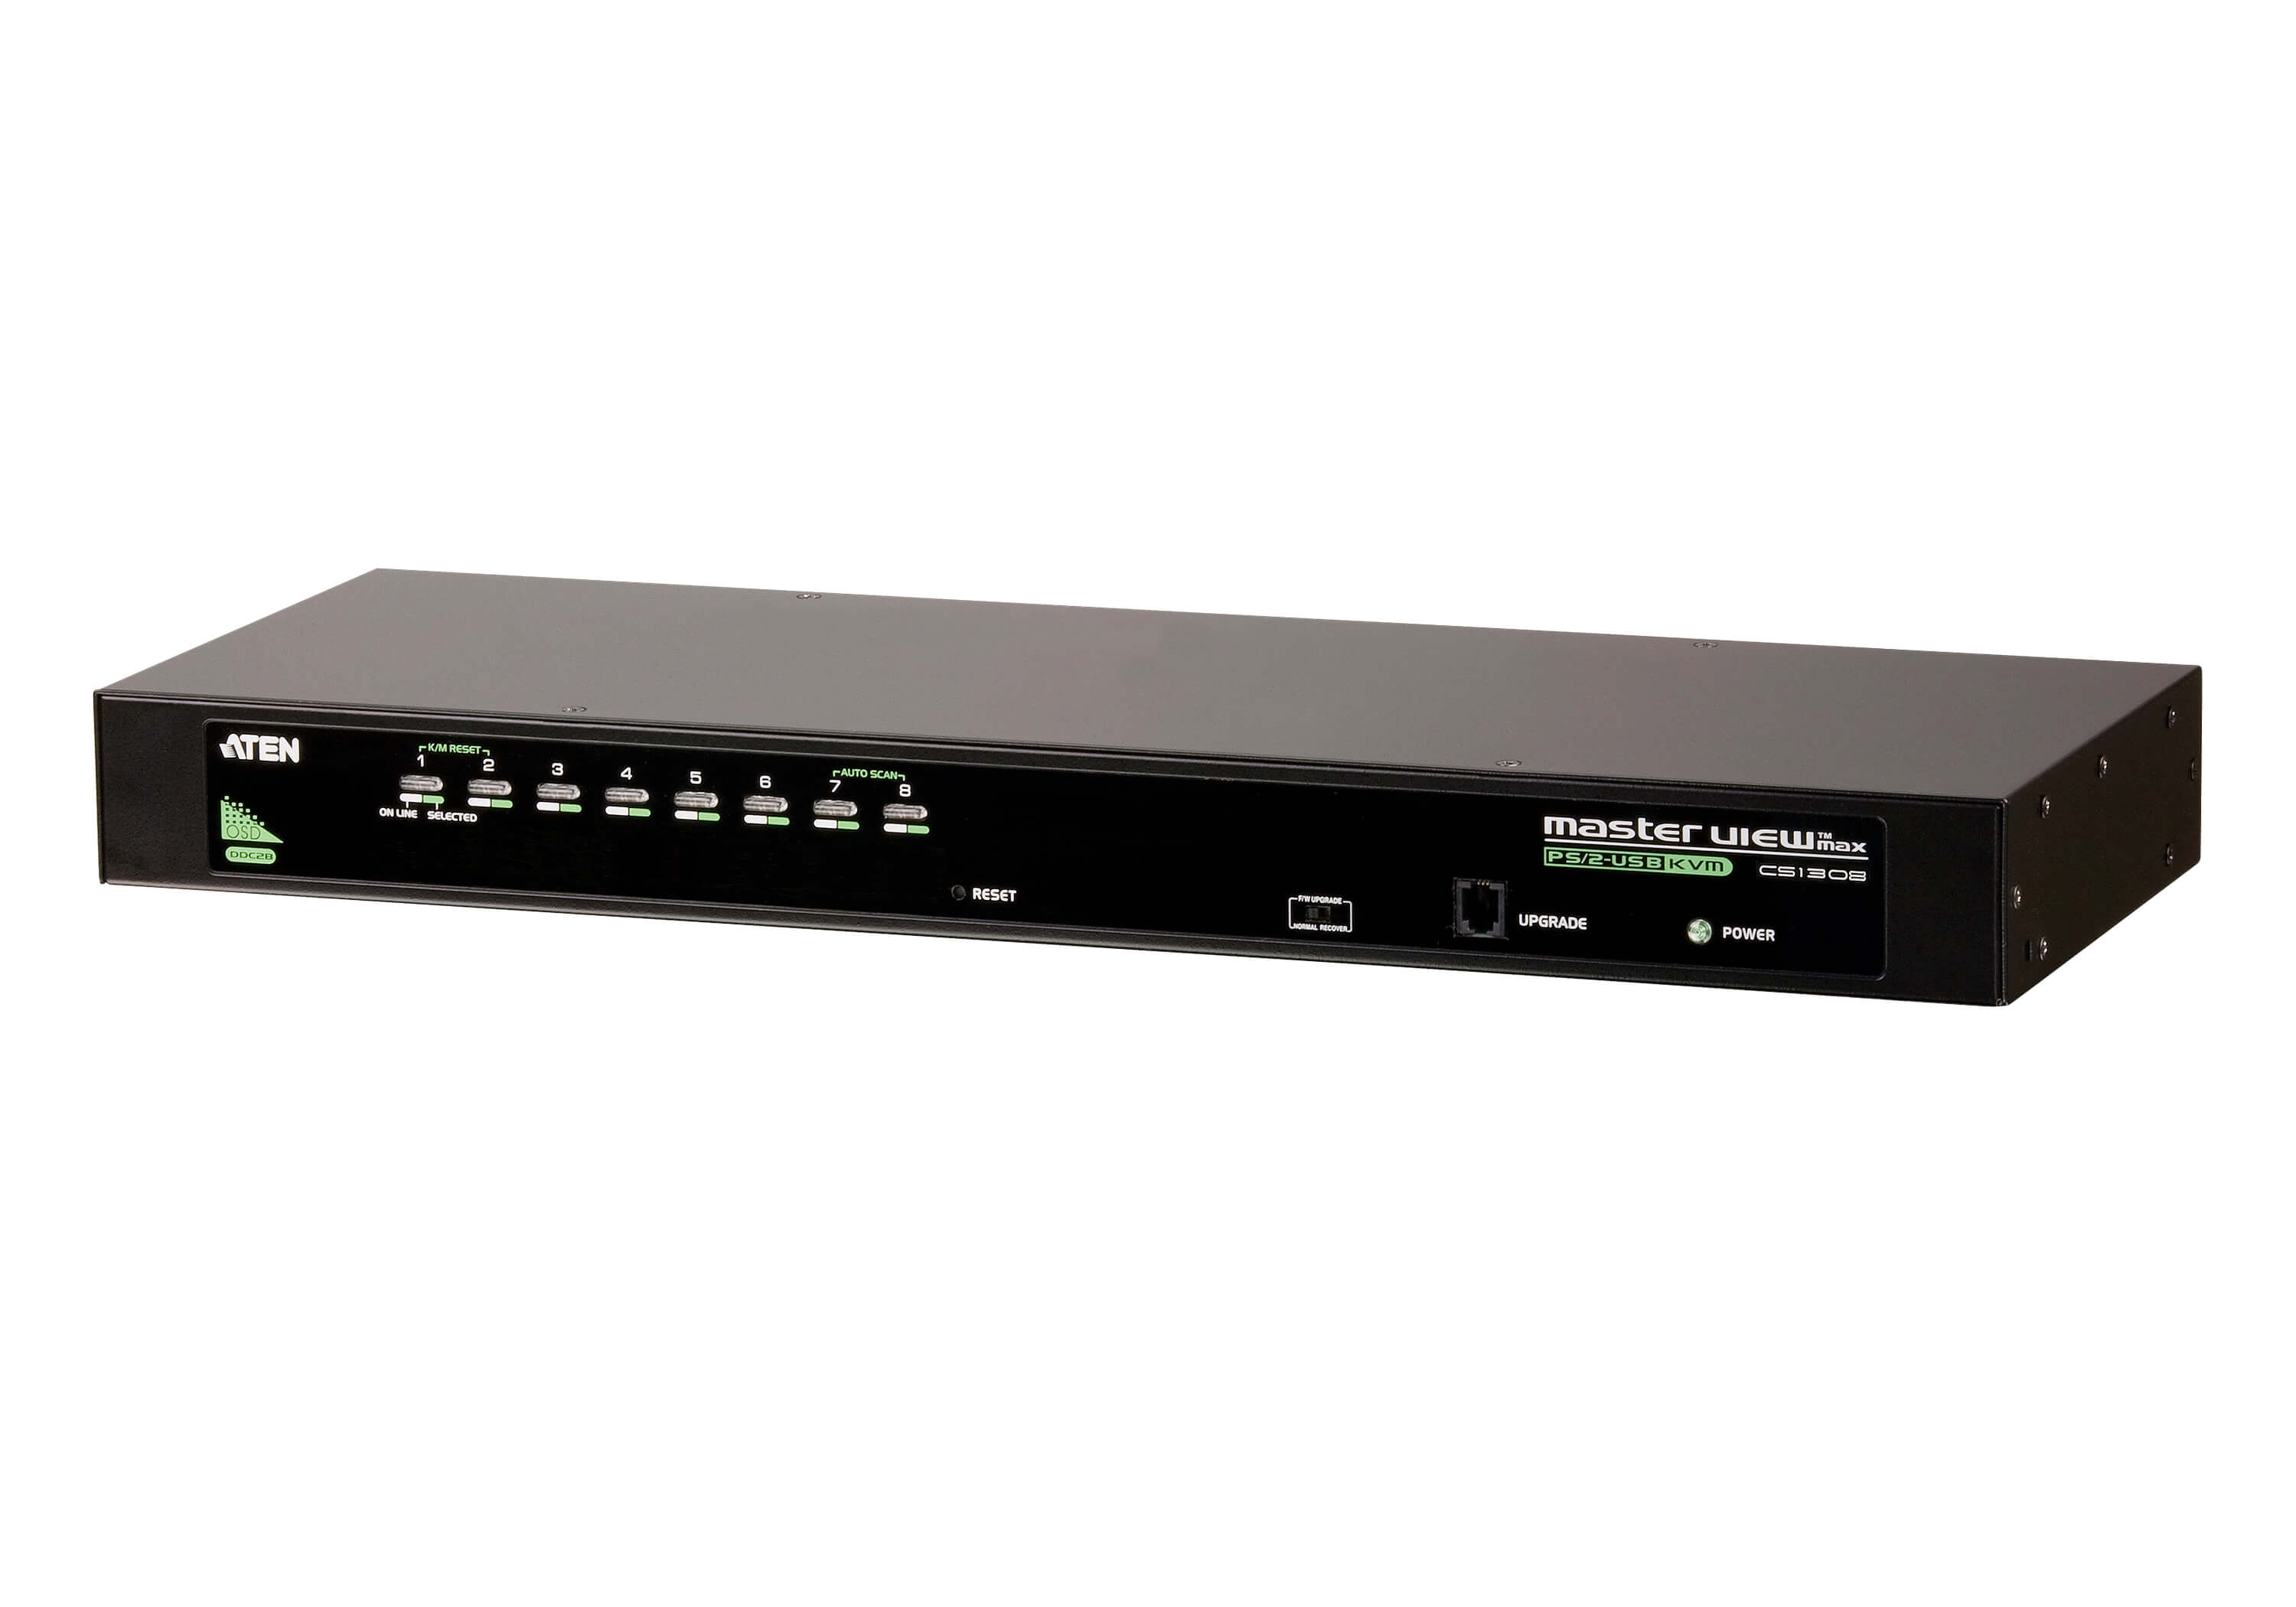 8-Port-PS/2-USB-VGA-KVM-Switch